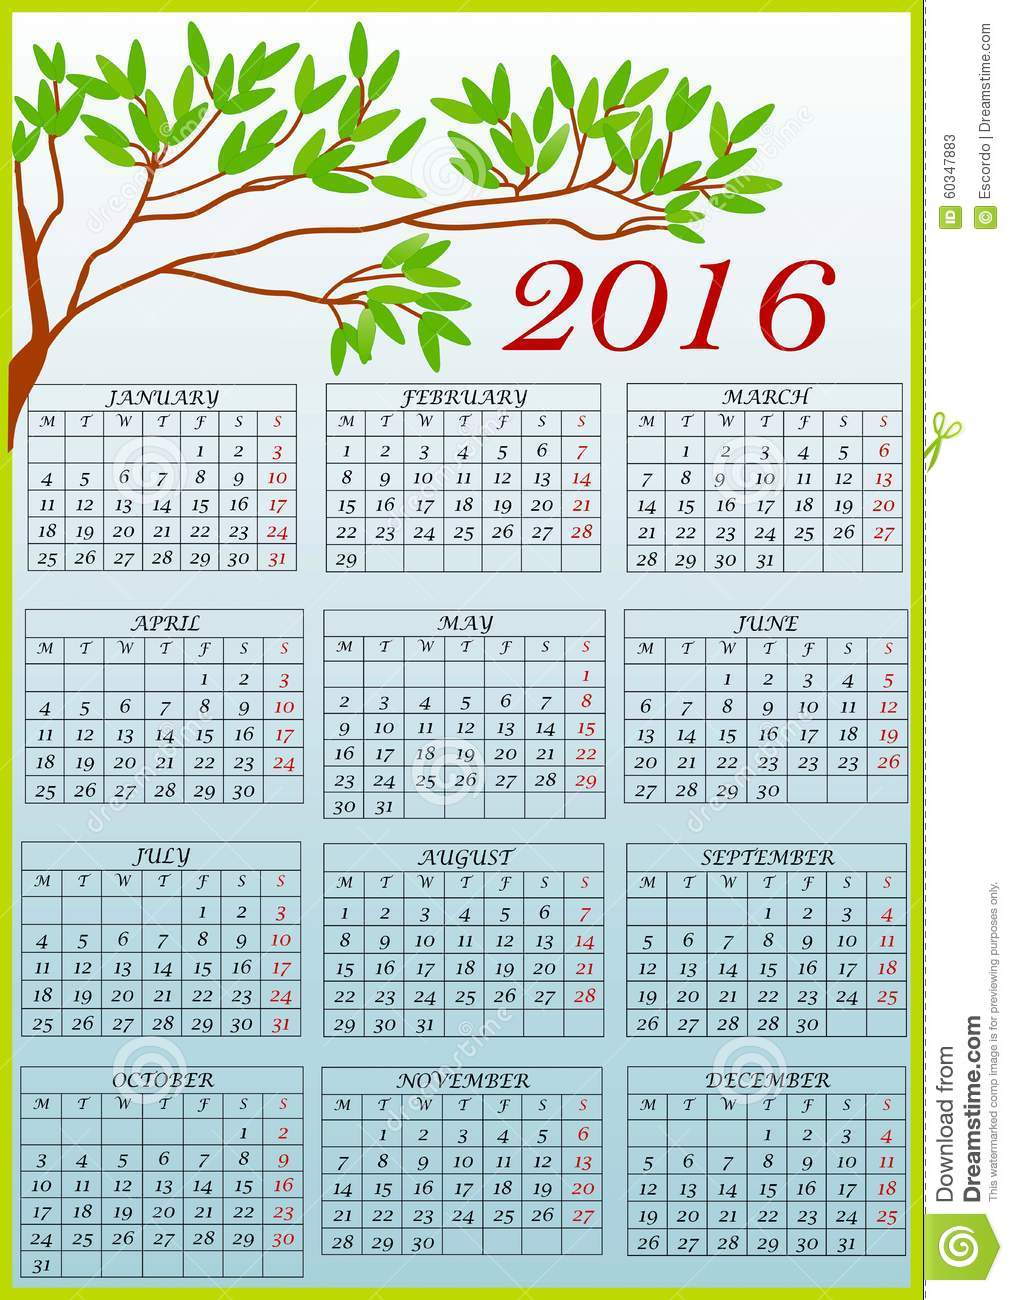 Calendar 2016 clipart banner black and white download Clip Art With Calendar 2016 Stock Illustration - Image: 60347883 banner black and white download